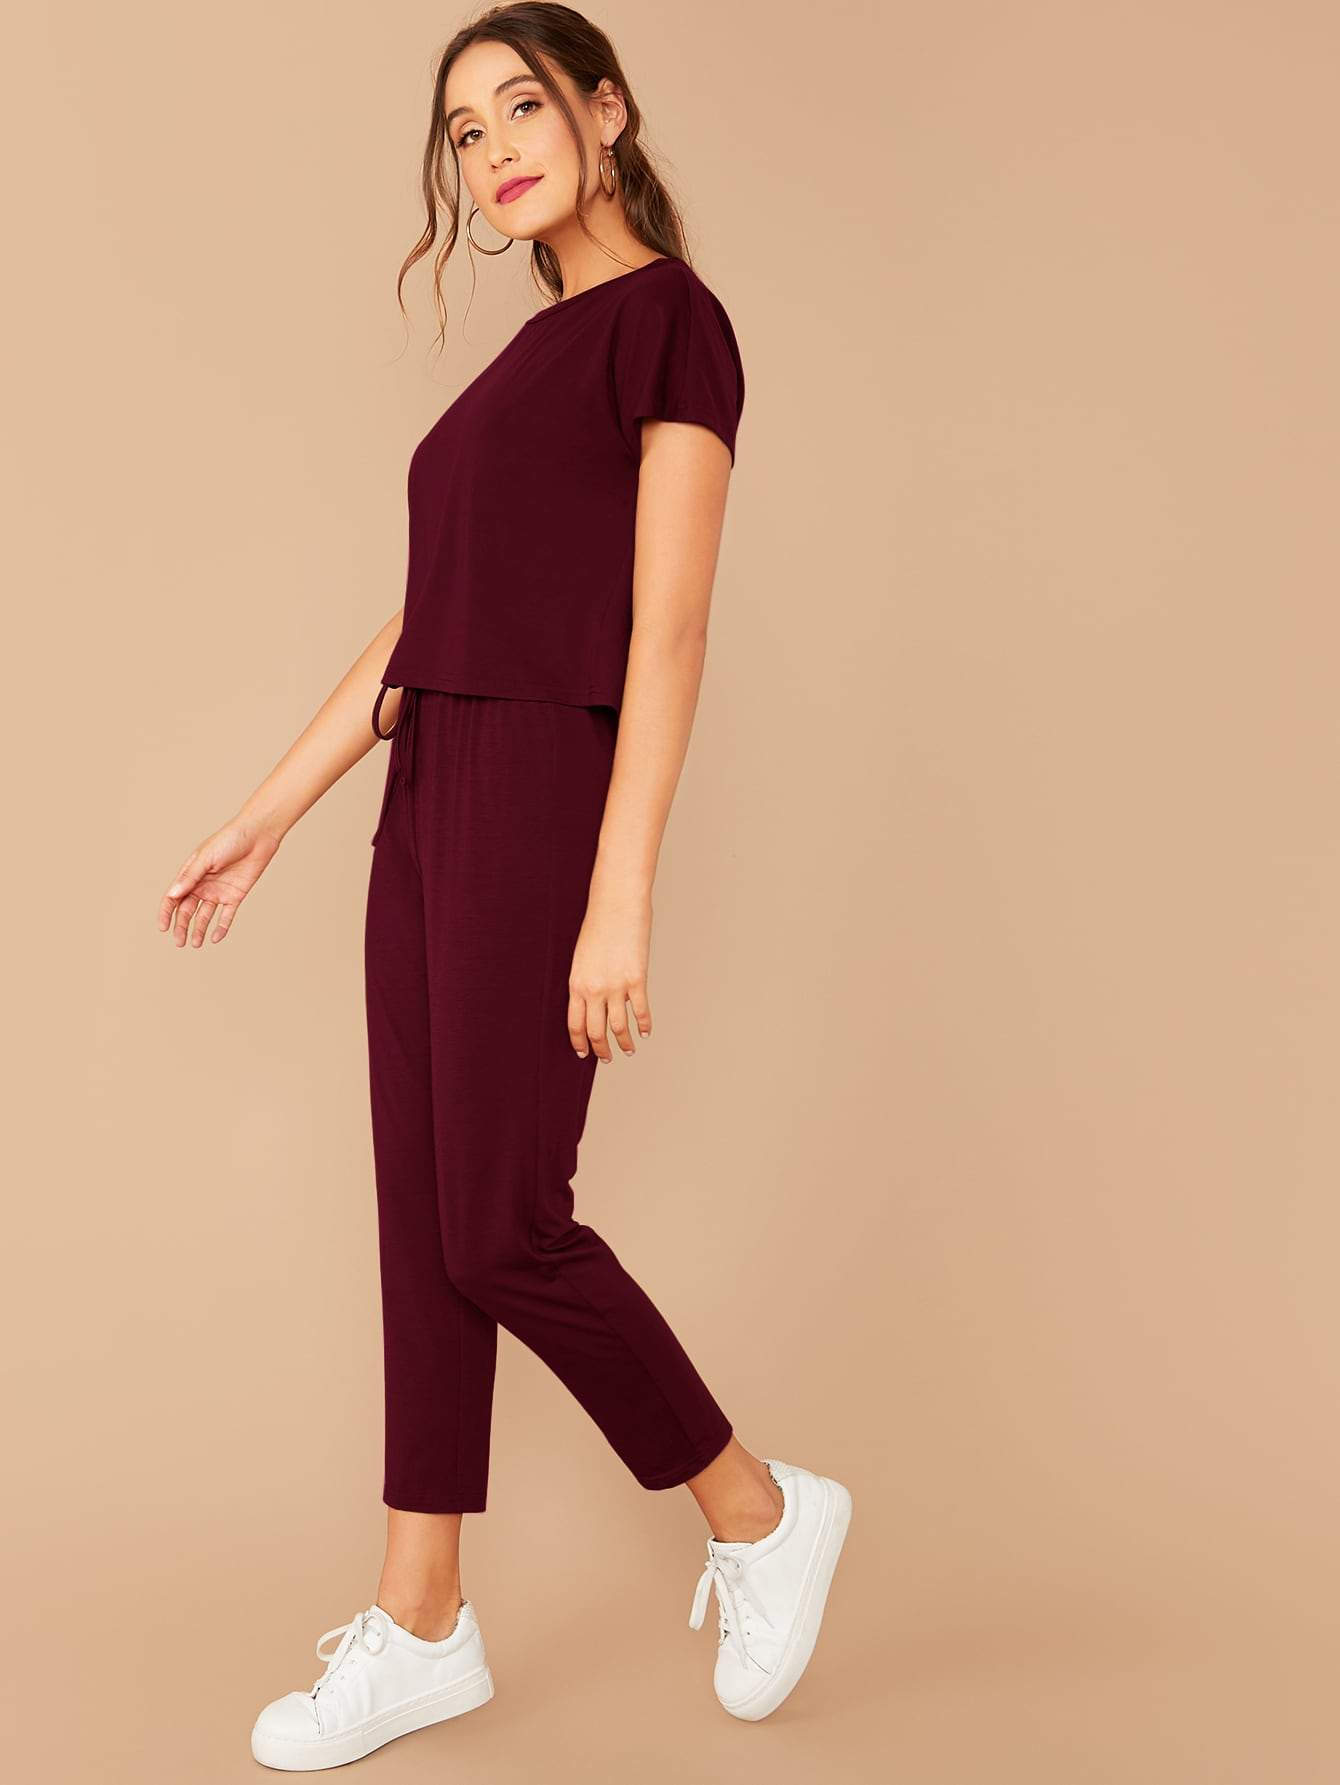 Solid Boxy Tee & Drawstring Ankle-Cut Pants Set - FLJ CORPORATIONS